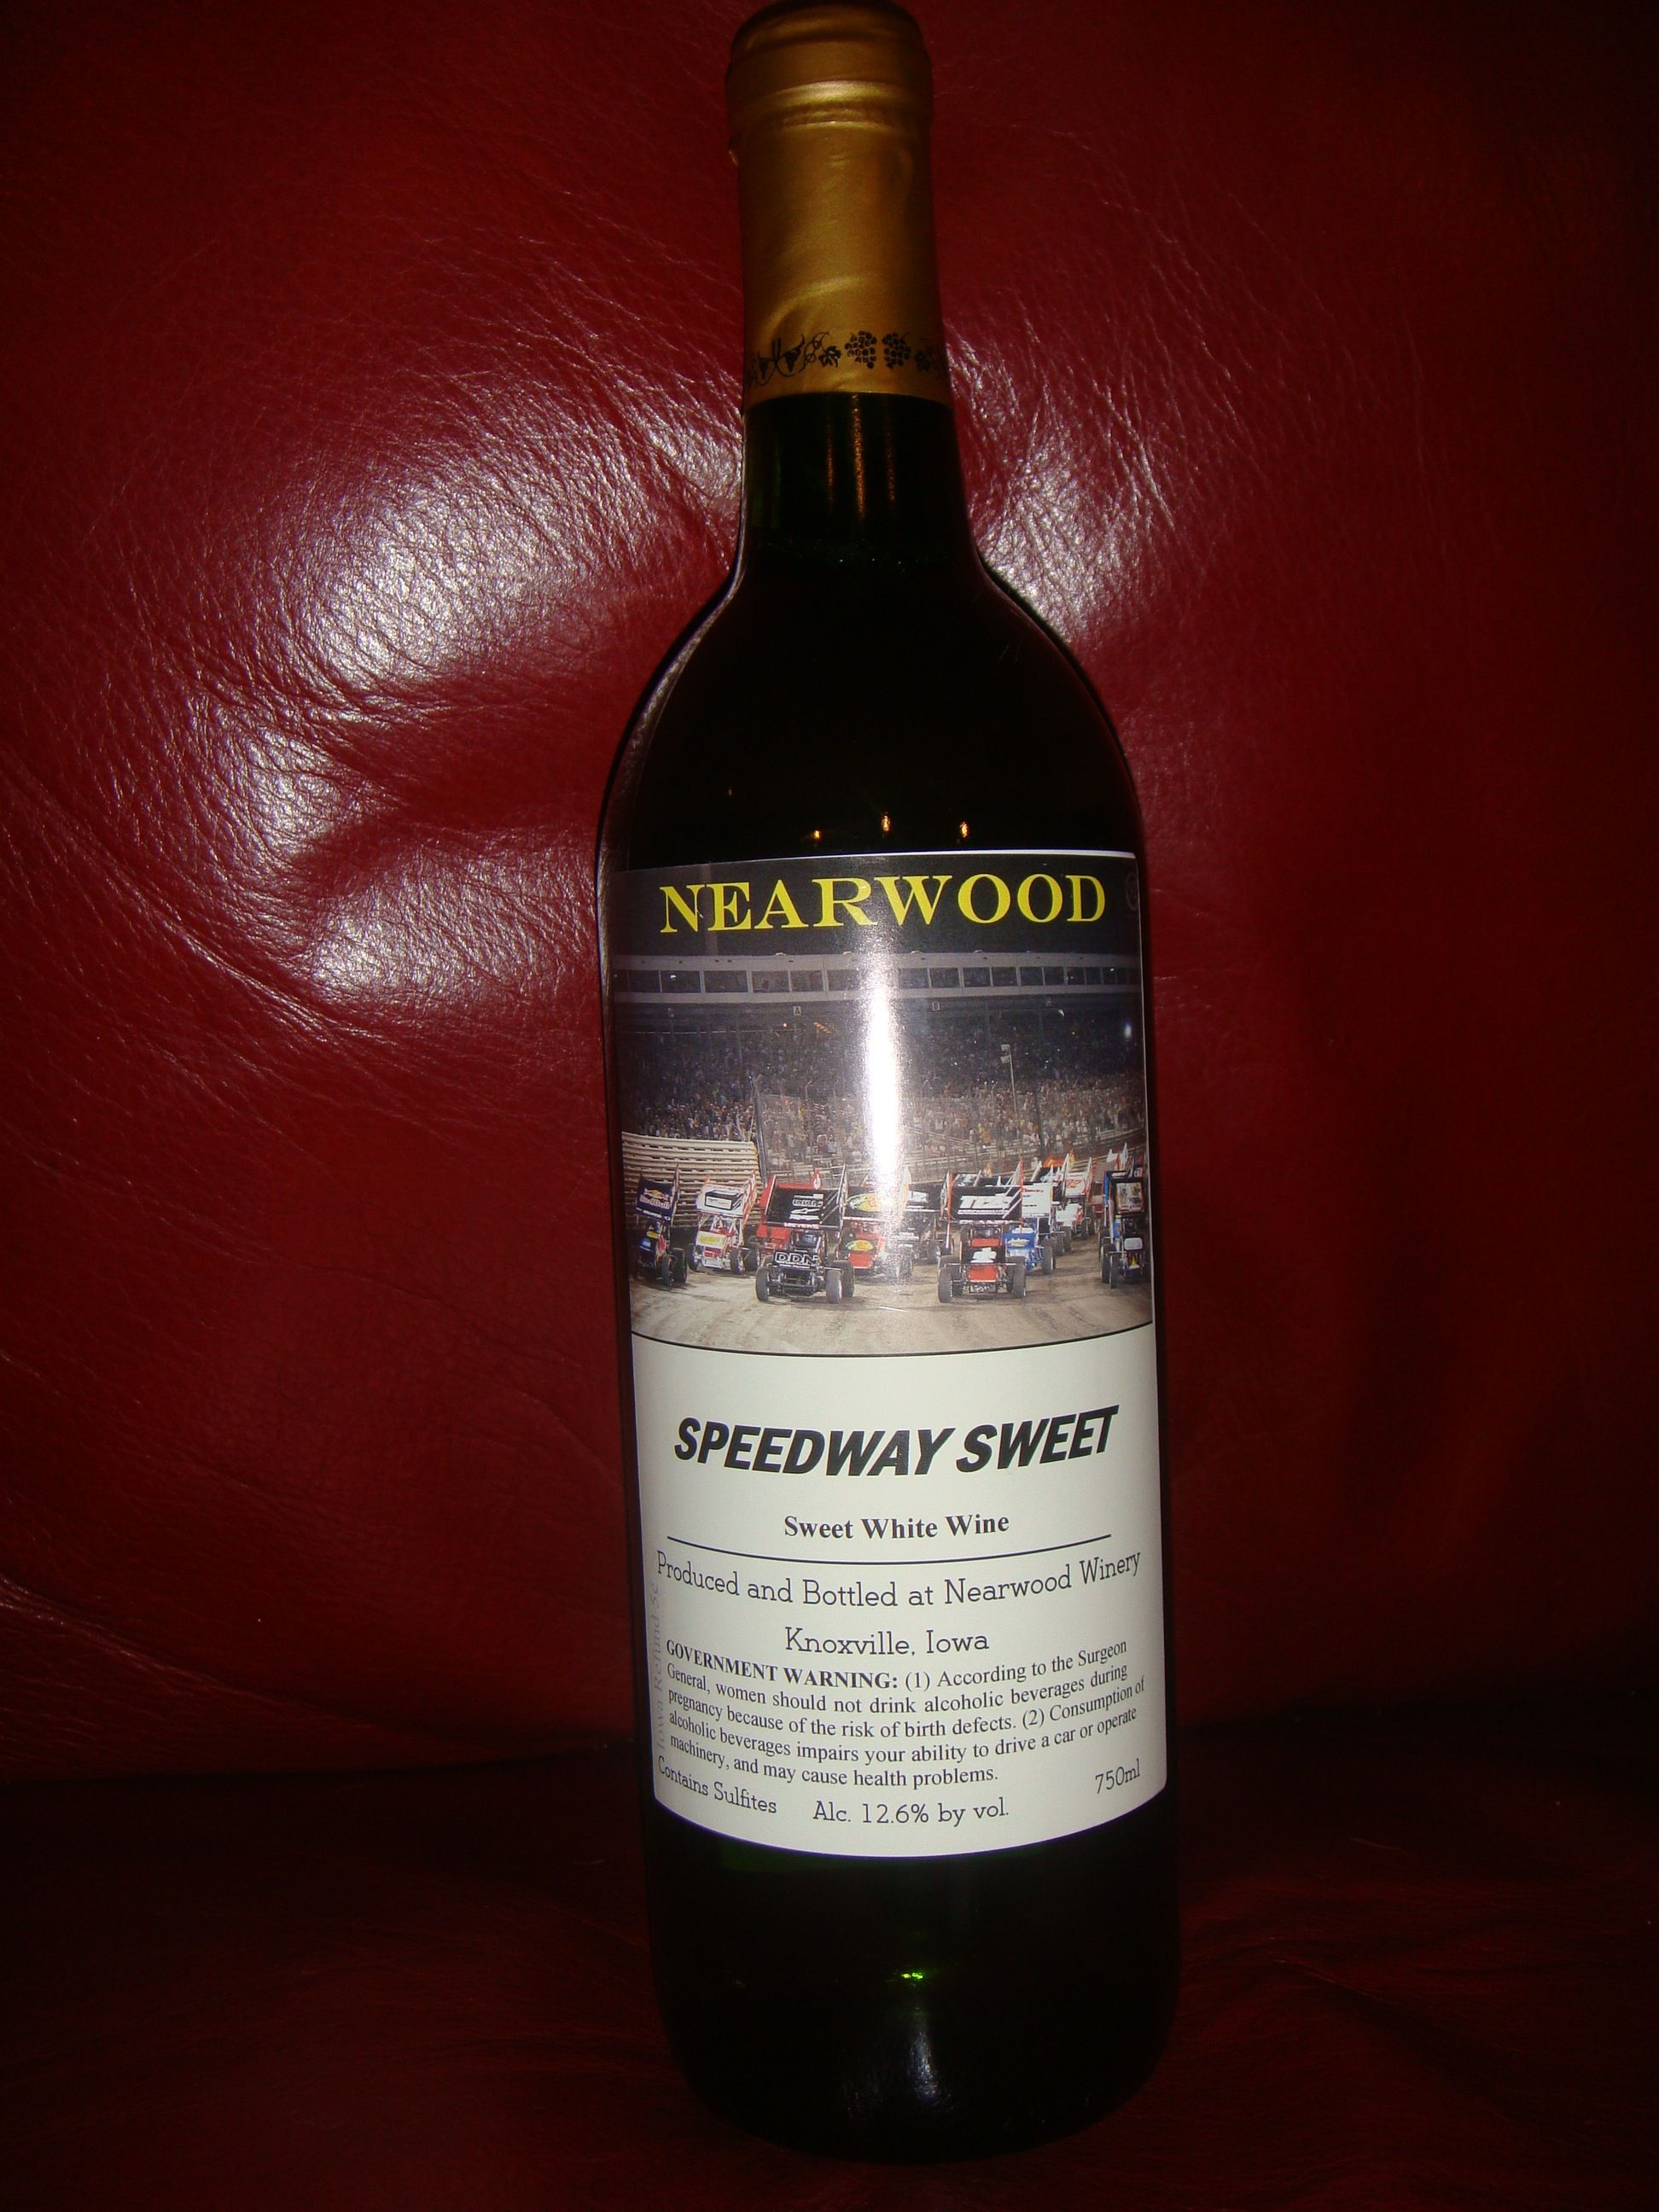 Speedway Sweet Sweet White Wine From The Nearwood Winery In Knoxville Ia Wine Wine Drinks